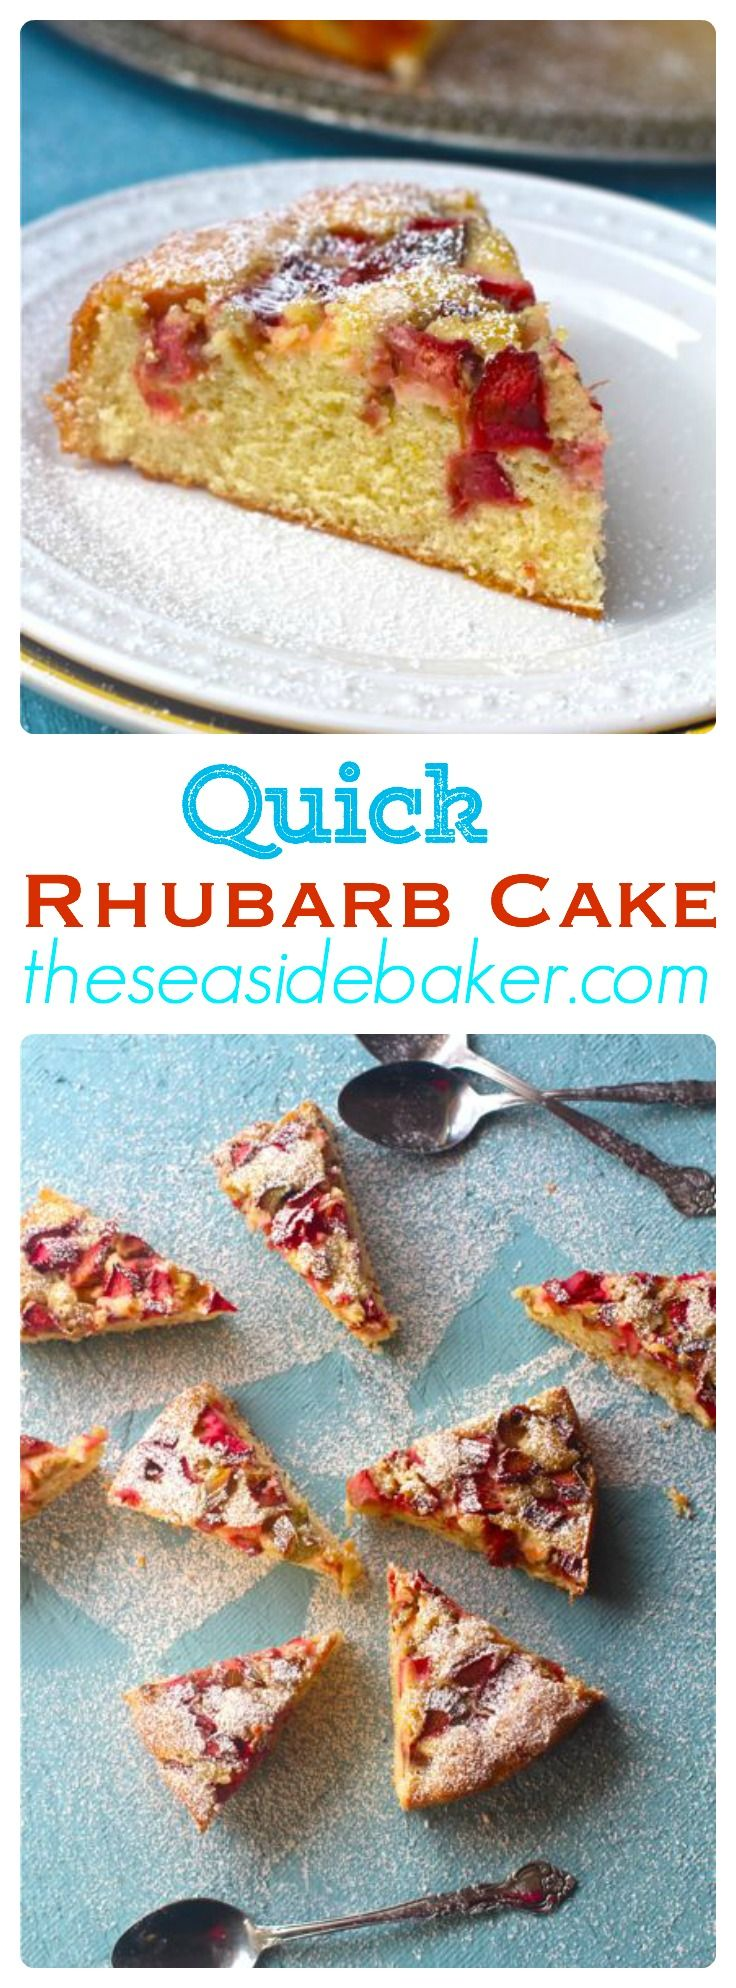 Award winning rhubarb cake that is easy to make and delicious! (cookie bowls easy)